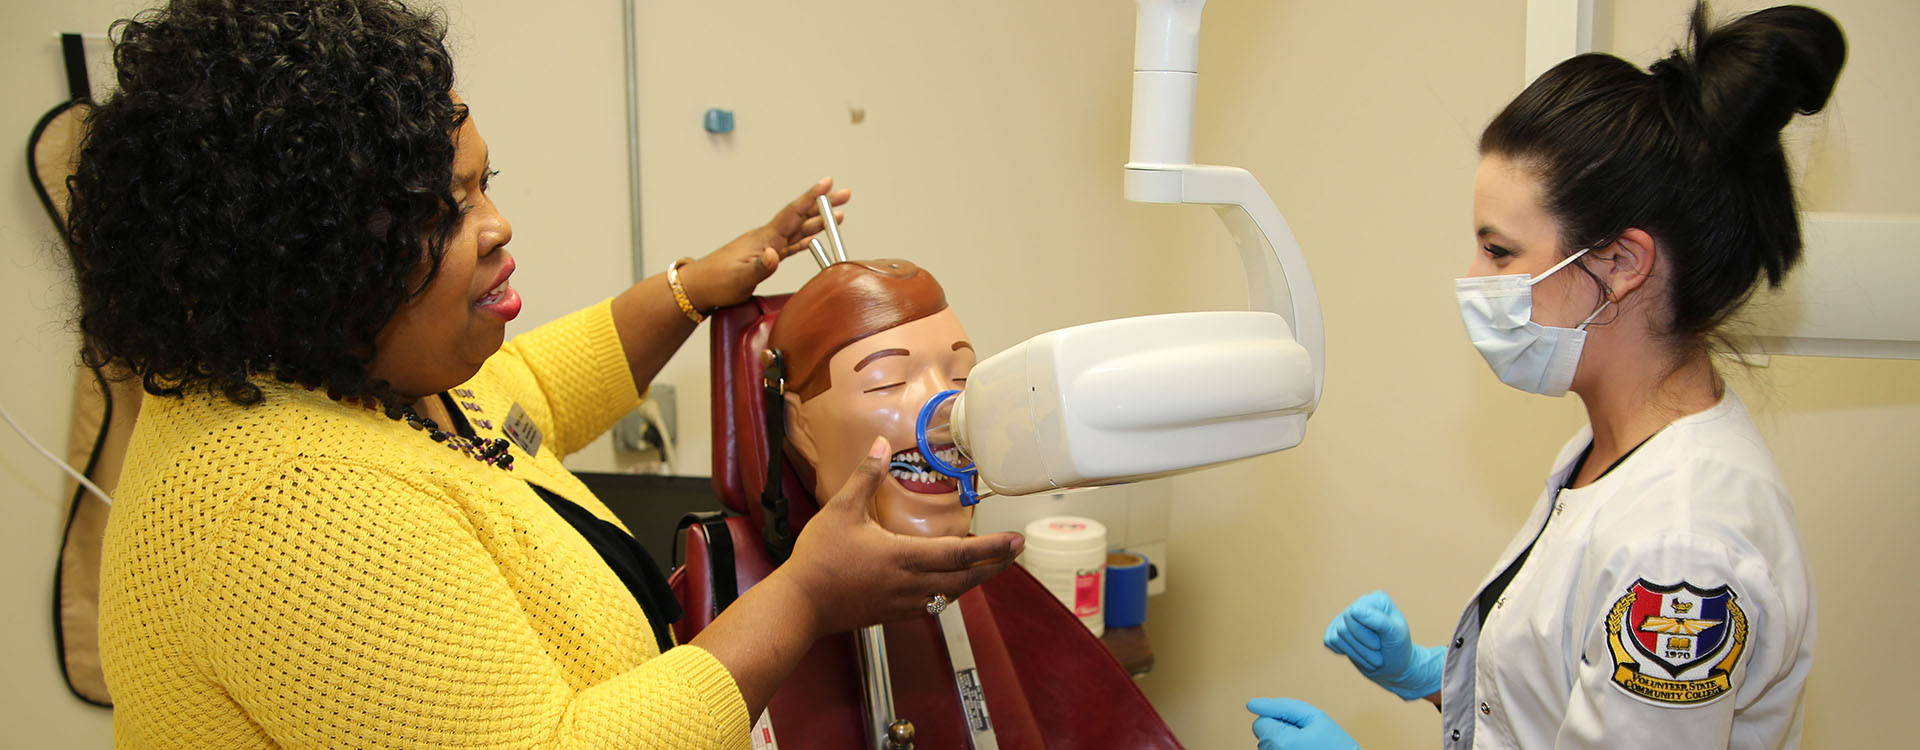 dental assisting student learning from teacher